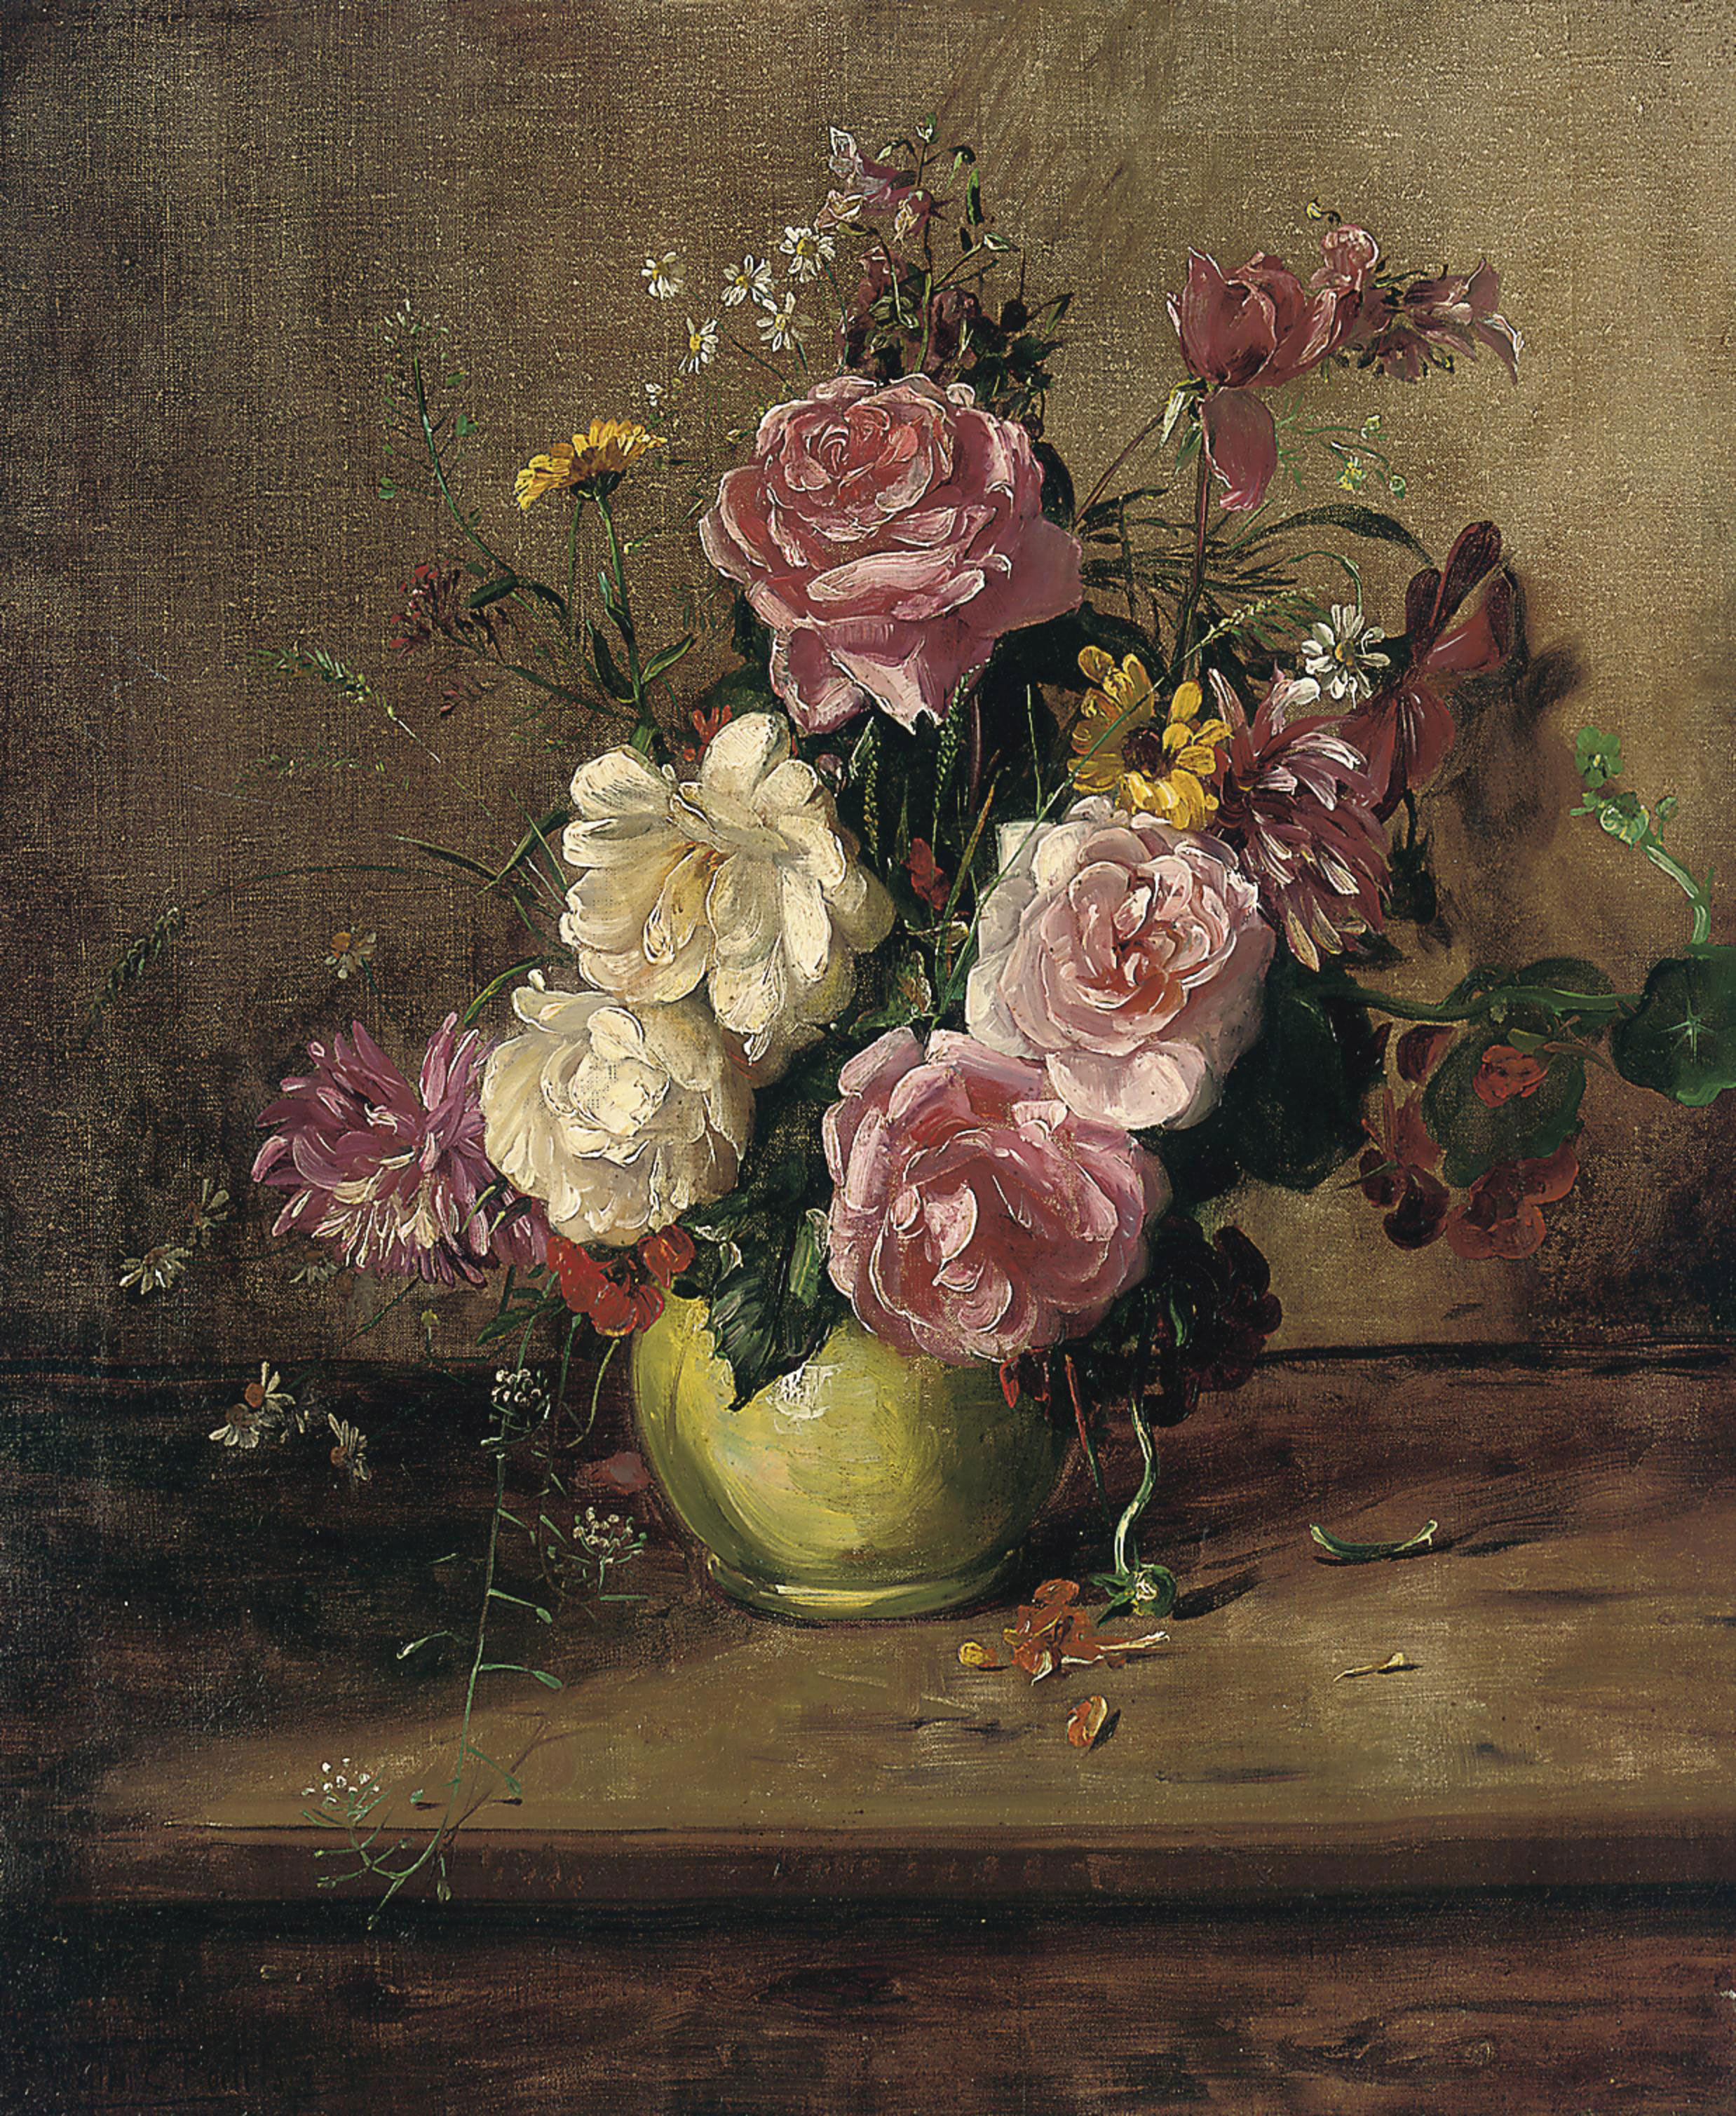 Roses, crysanthemums and other flowers in a green vase, on a wooden ledge